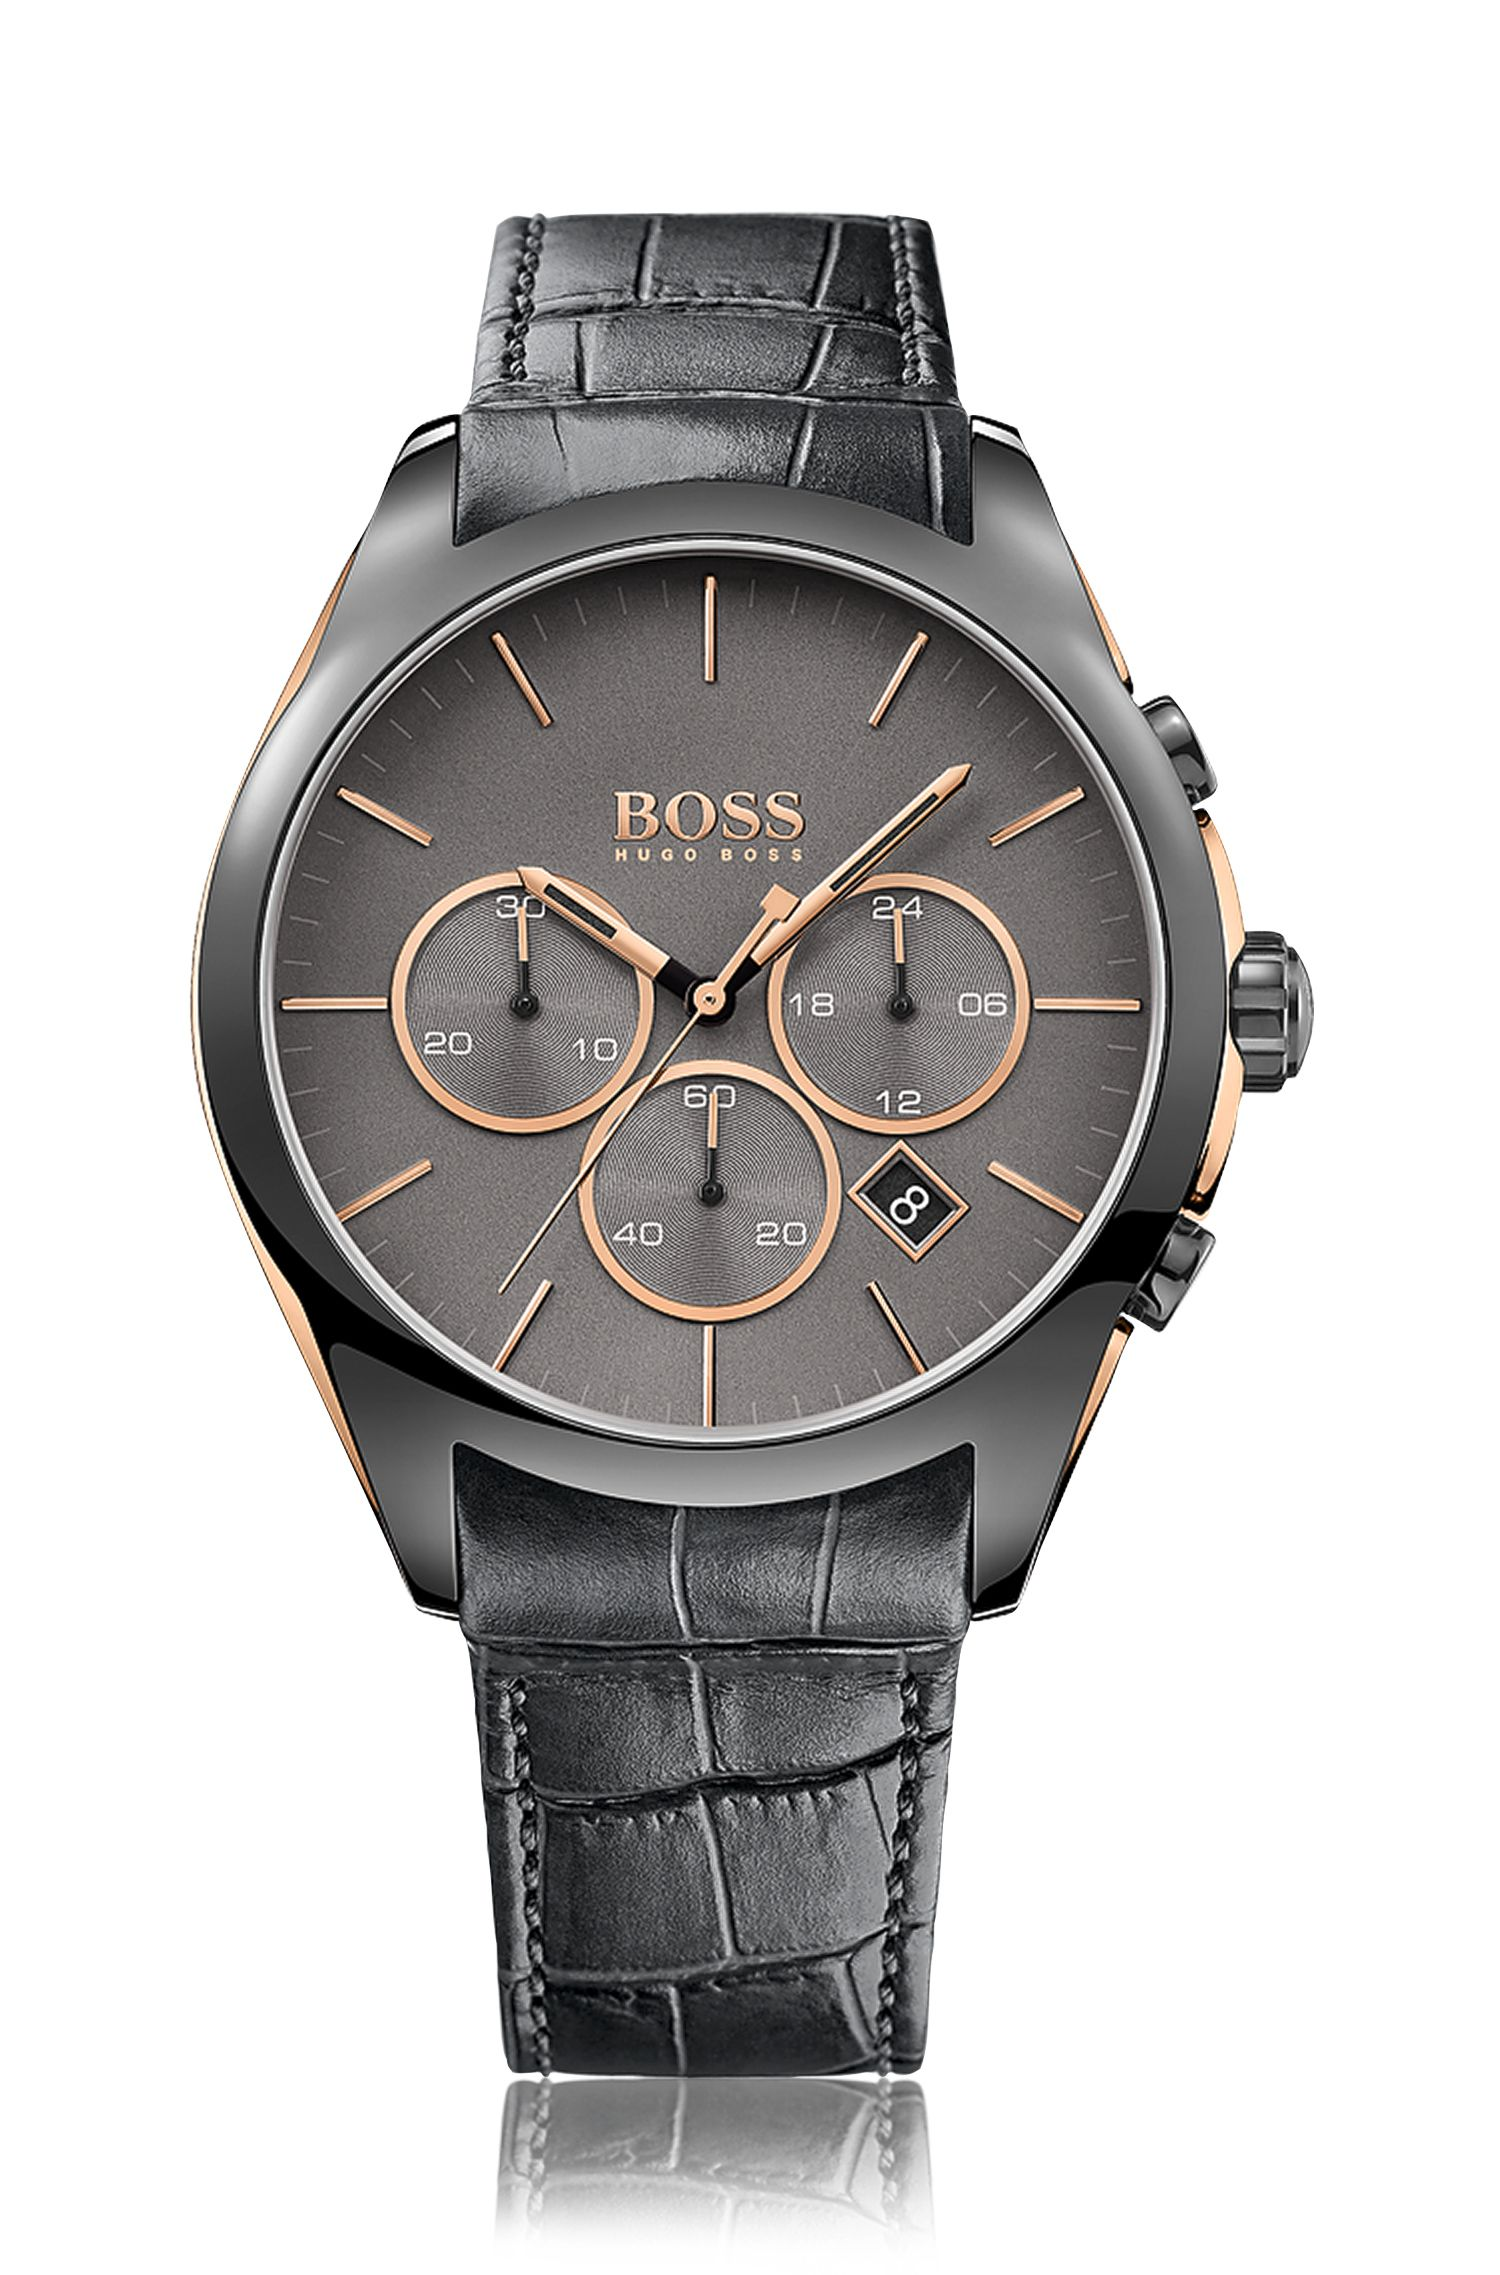 Blackened stainless-steel chronograph watch with black dial and leather strap